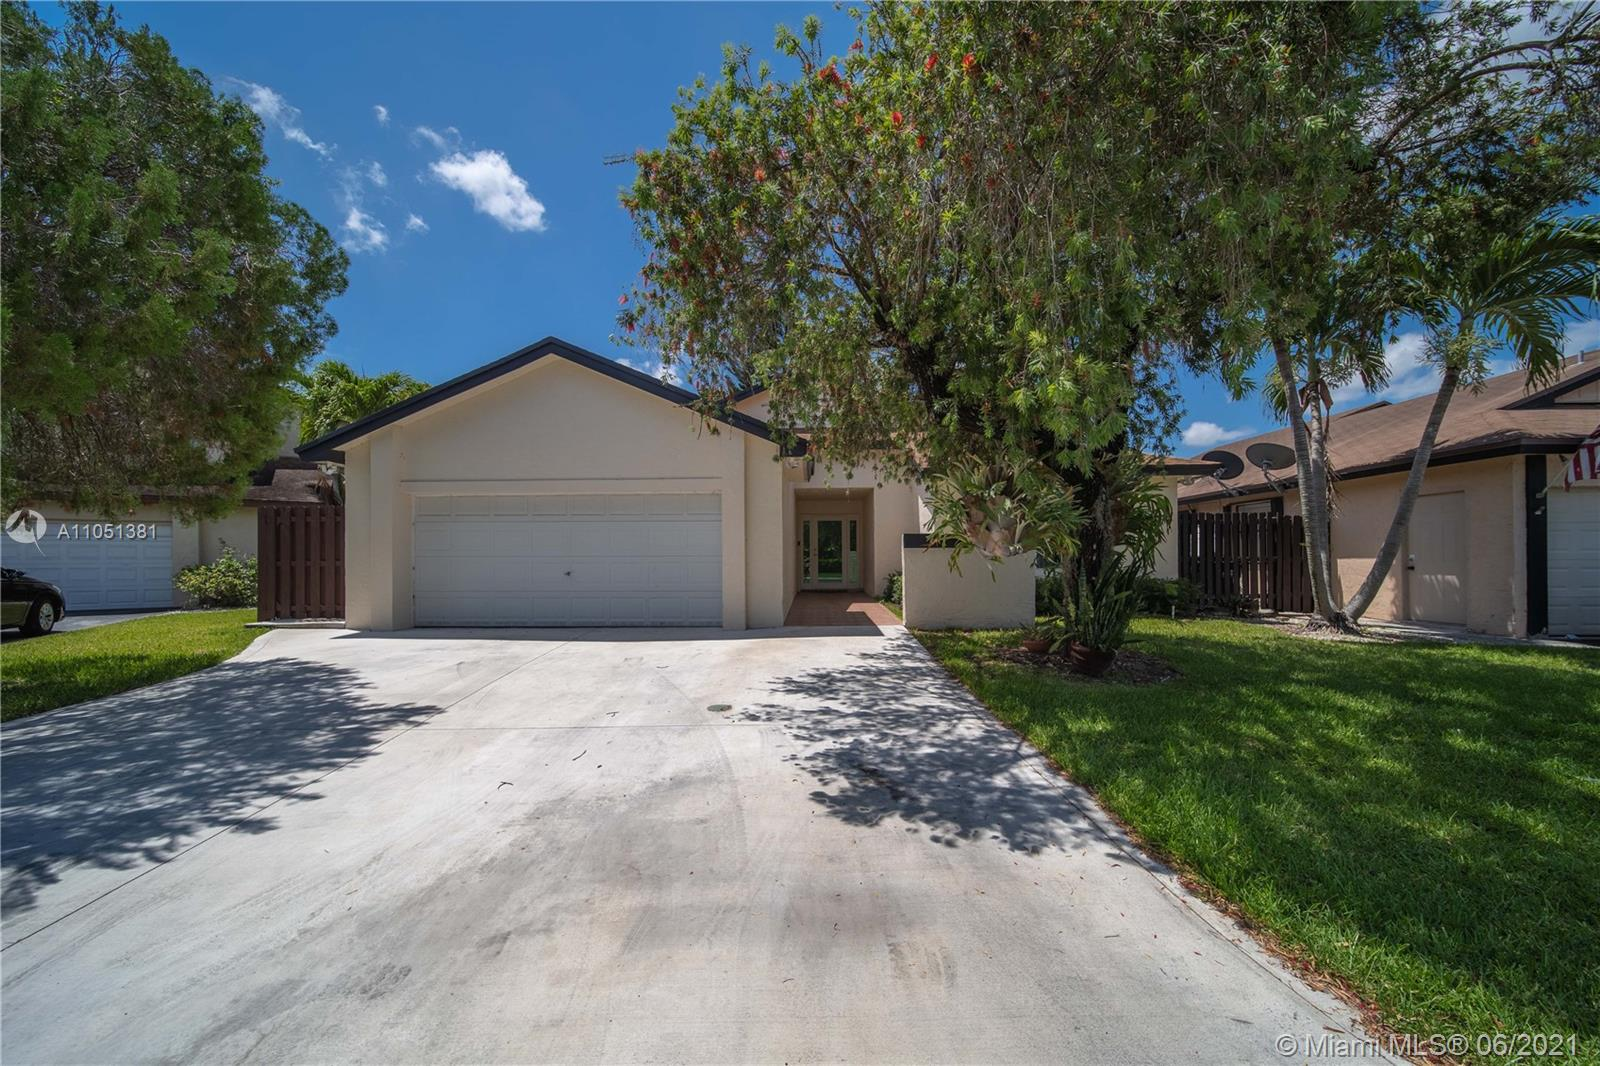 Lakes Of The Meadow - 5121 SW 149th Pl, Miami, FL 33185